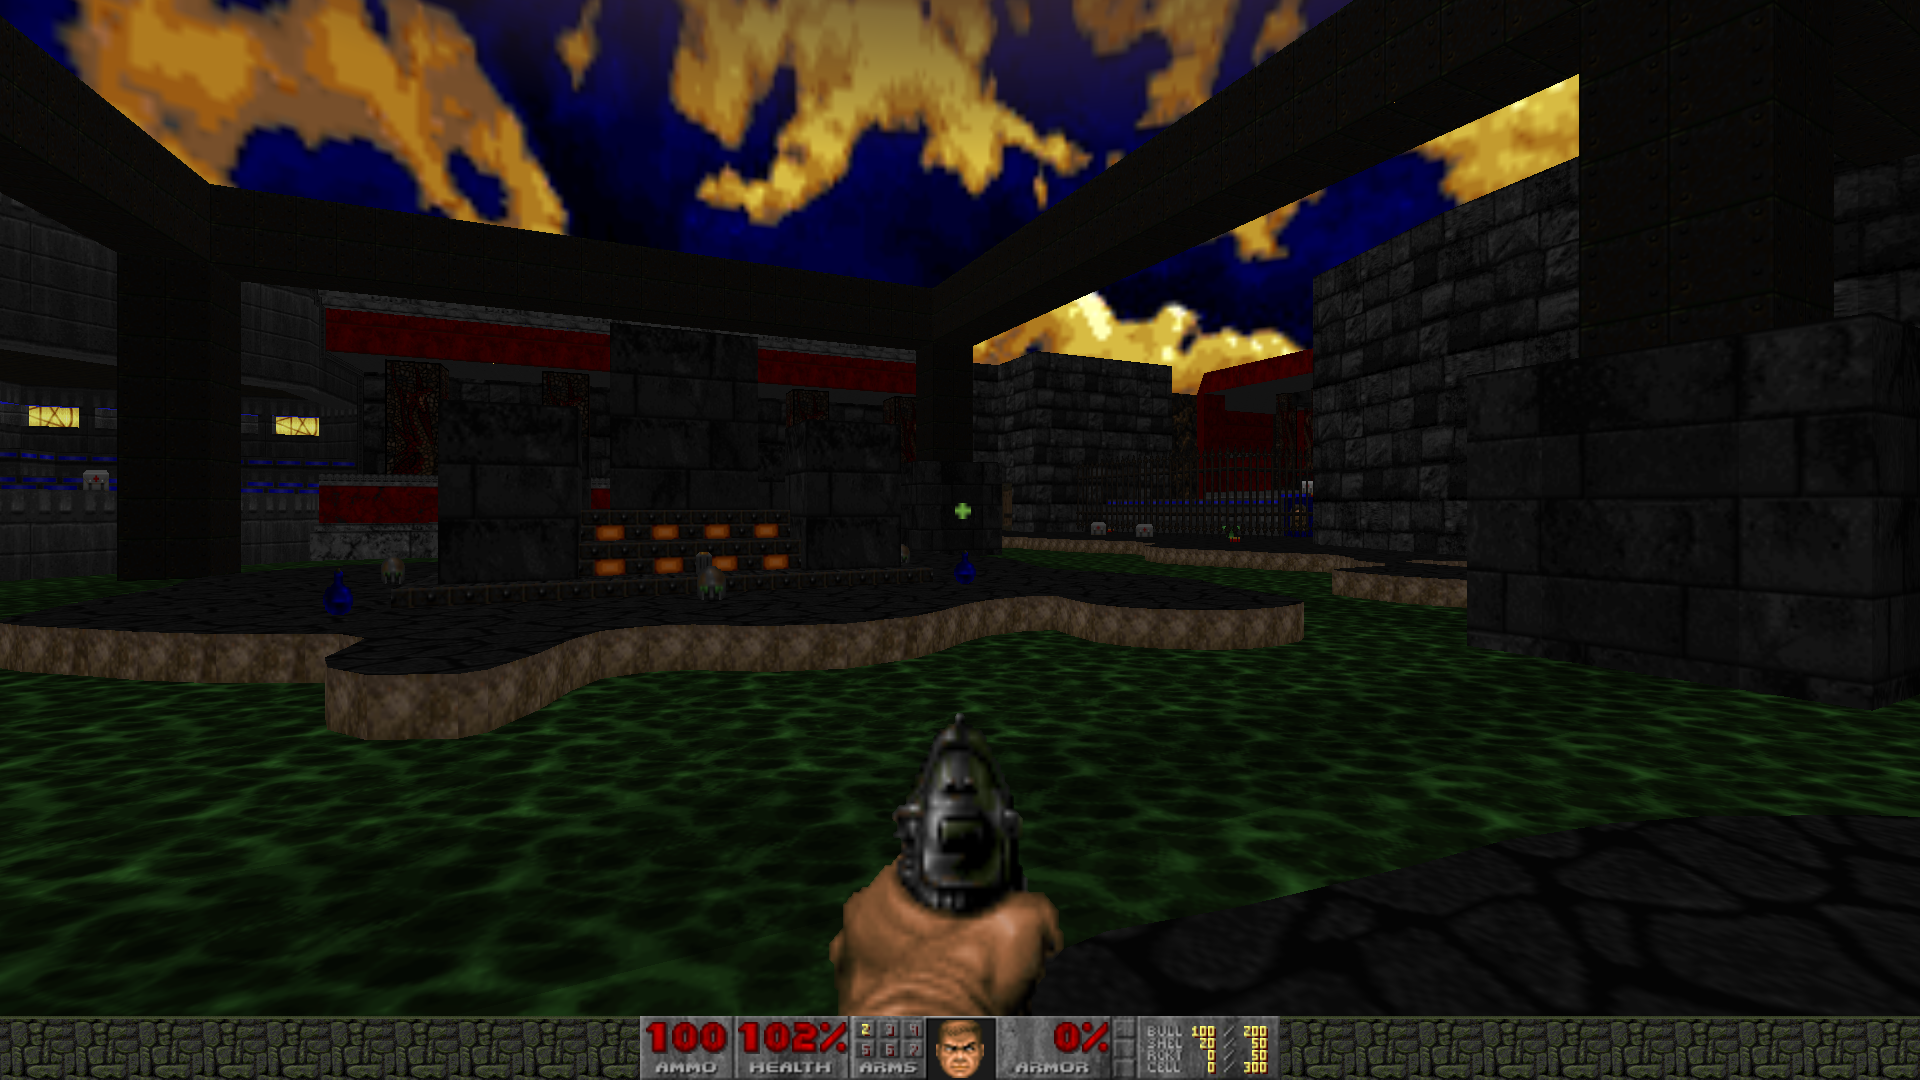 Screenshot_Doom_20190928_223022.png.4c088333f1da2434996d1558afe3c99a.png